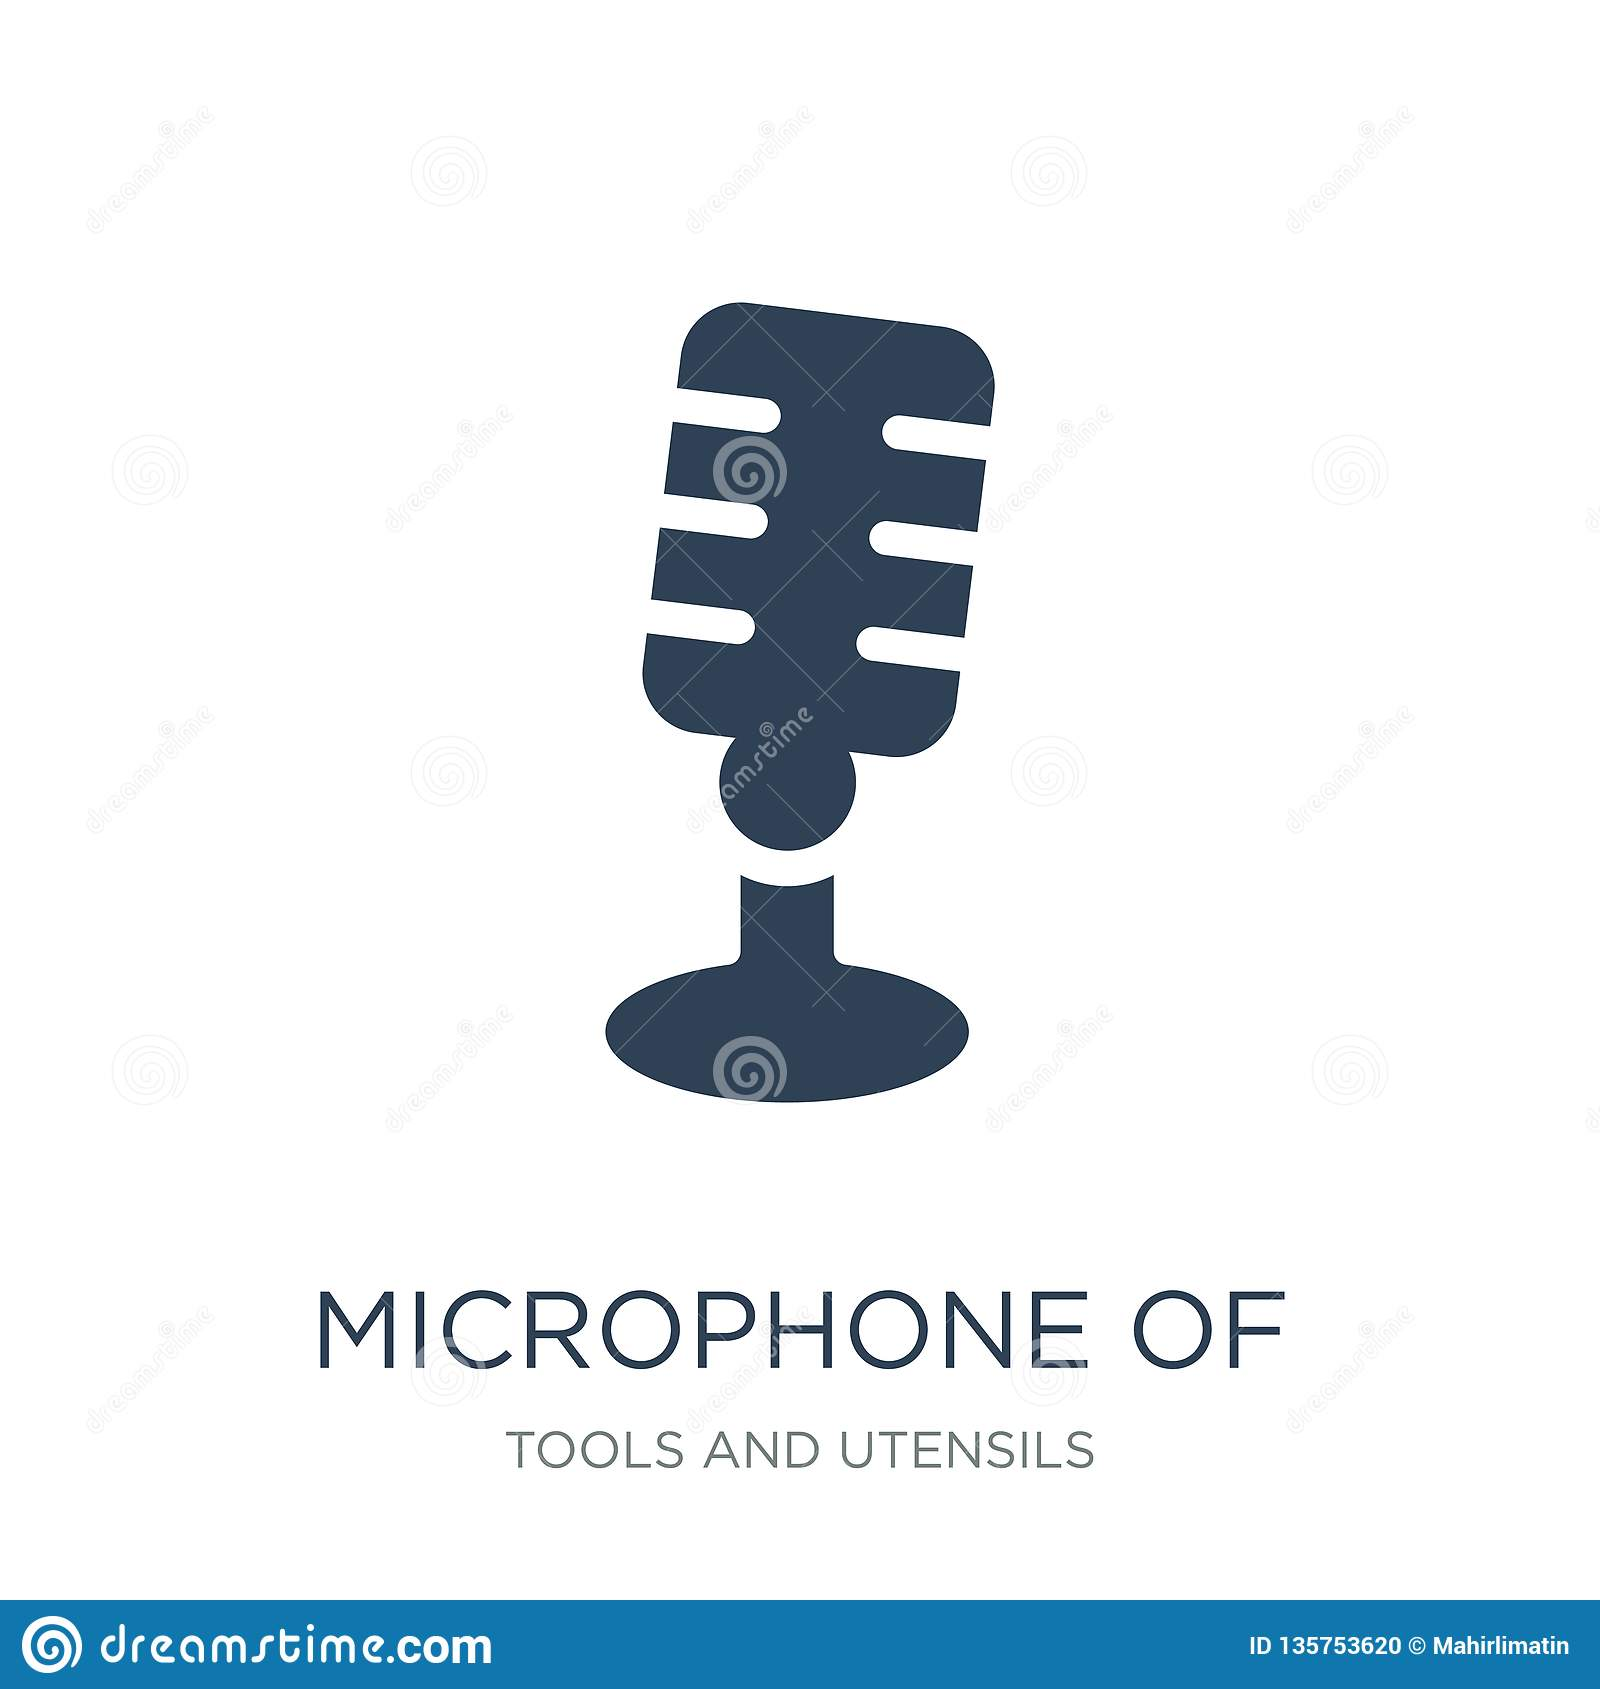 microphone of vintage de icon in trendy design style. microphone of vintage de icon isolated on white background. microphone of